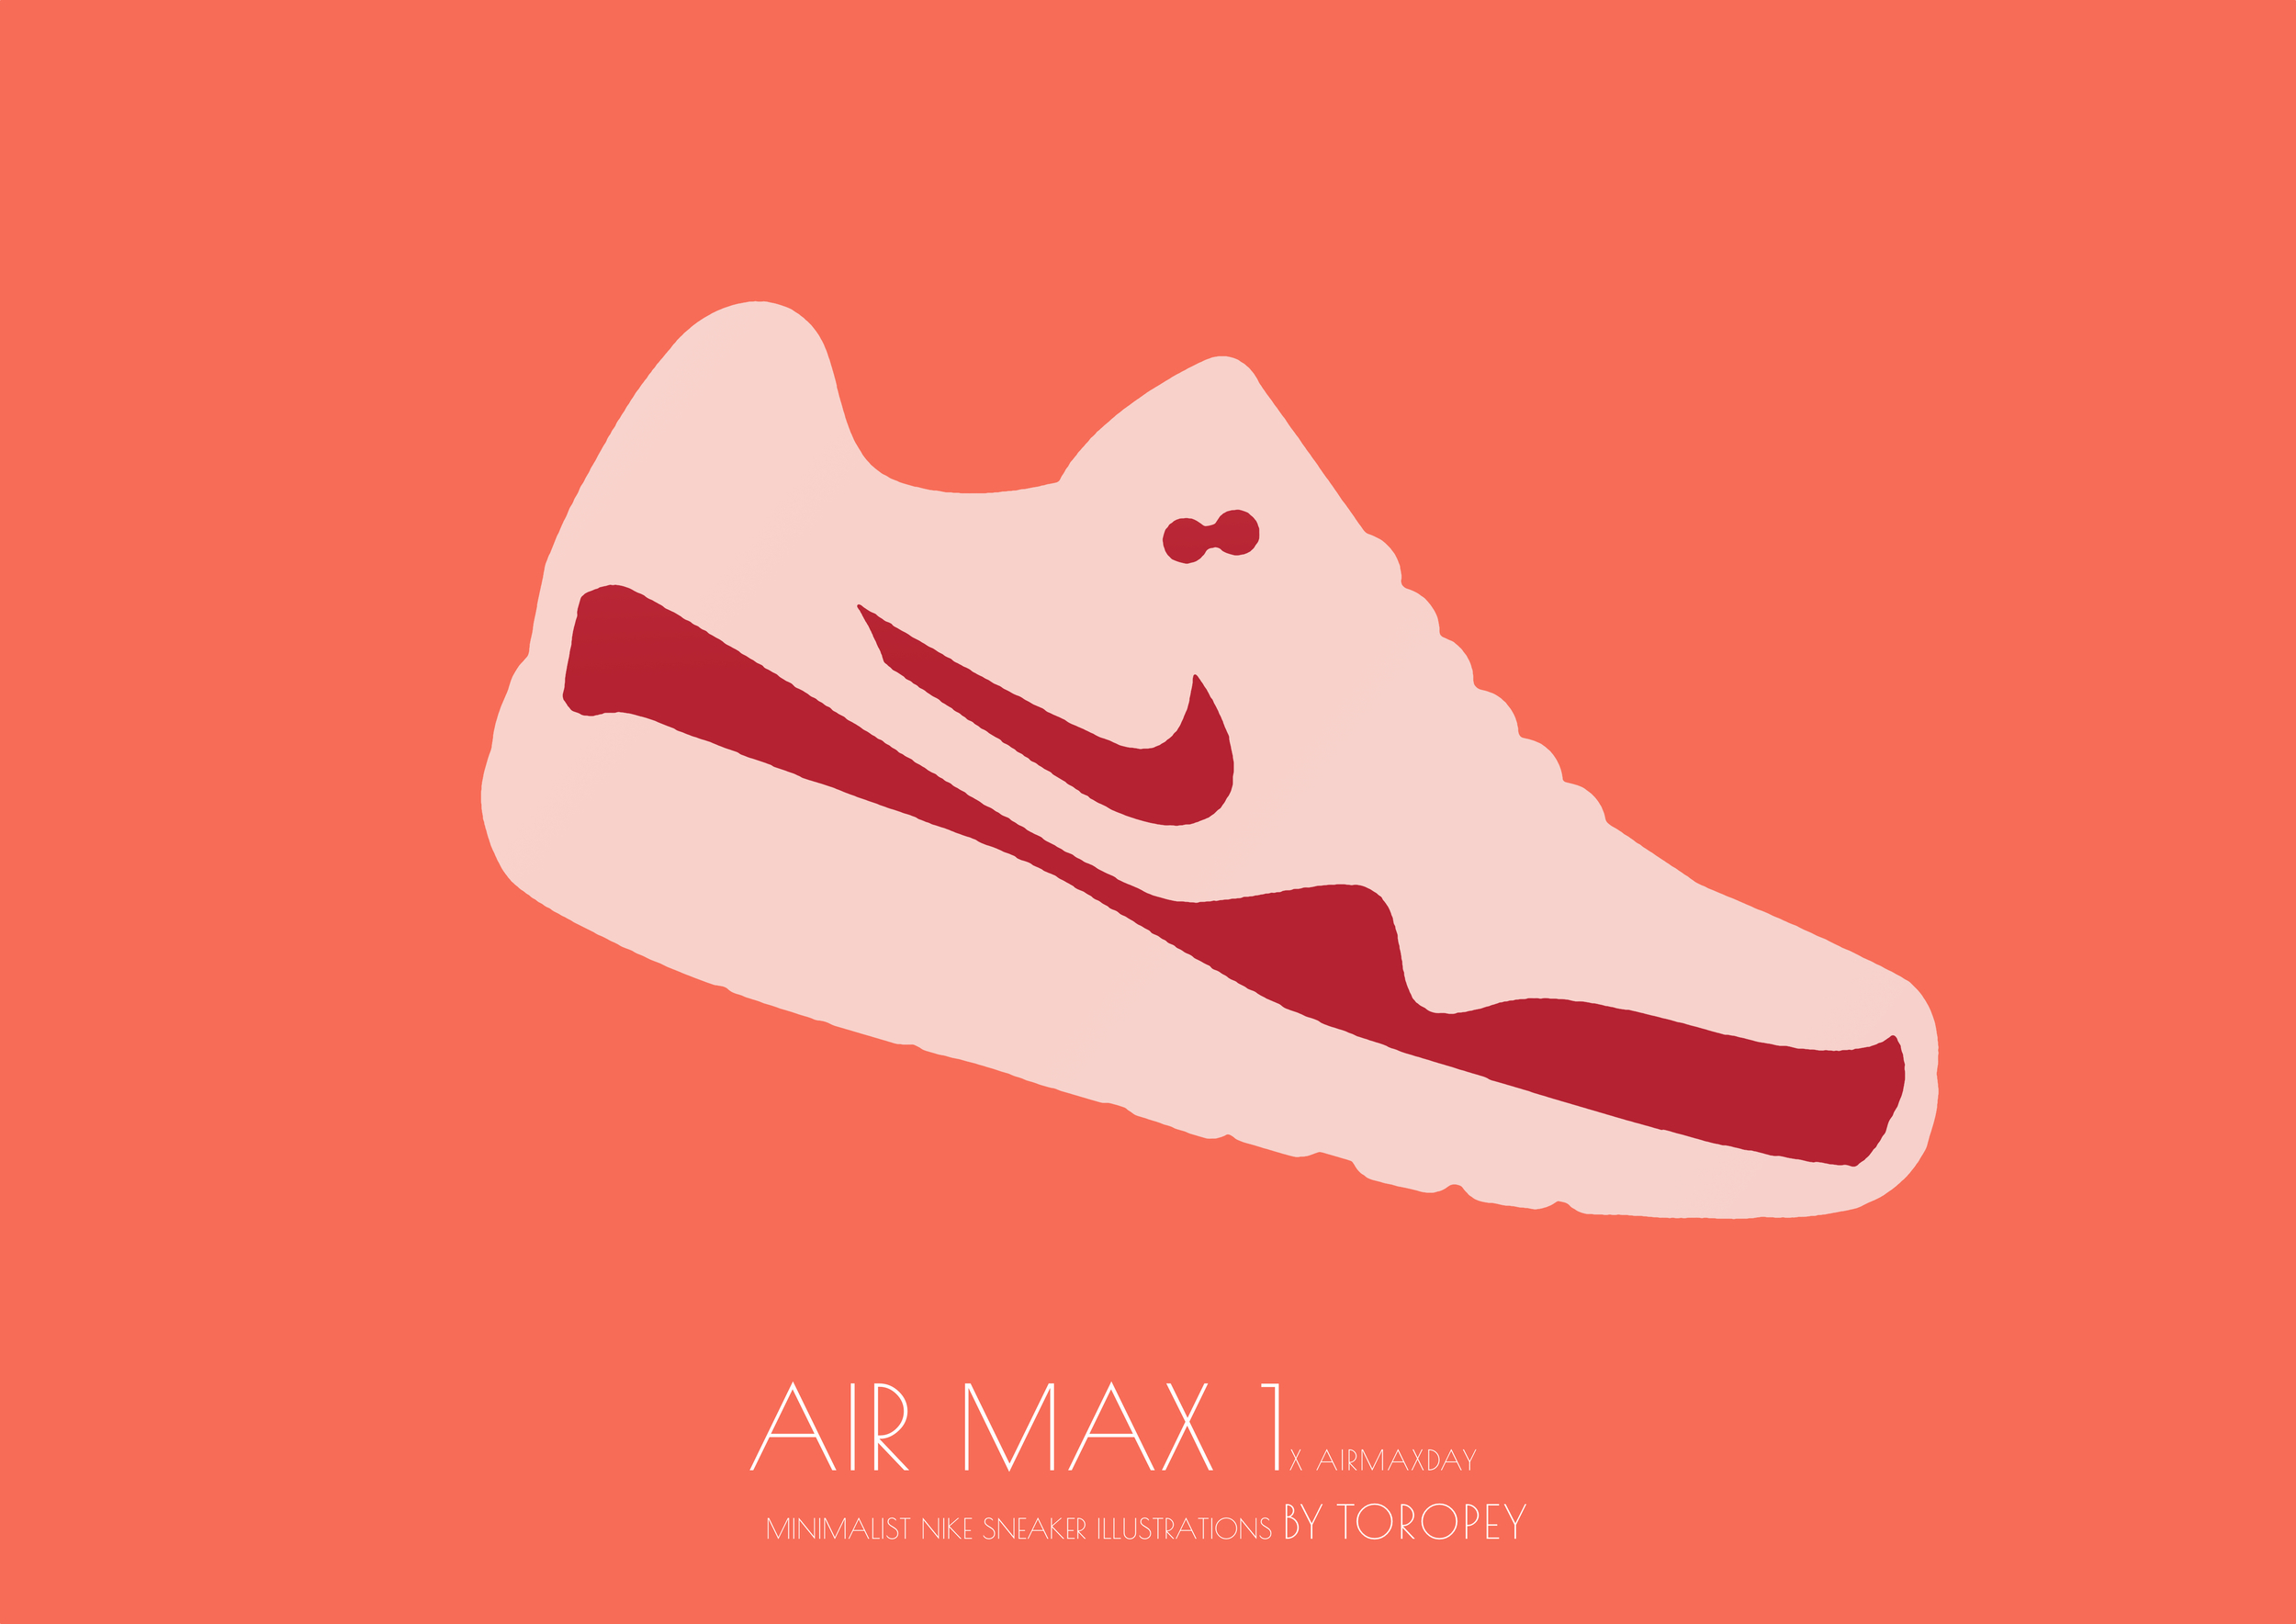 TOROPEY X AIRMAXDAY - AIR MAX 1